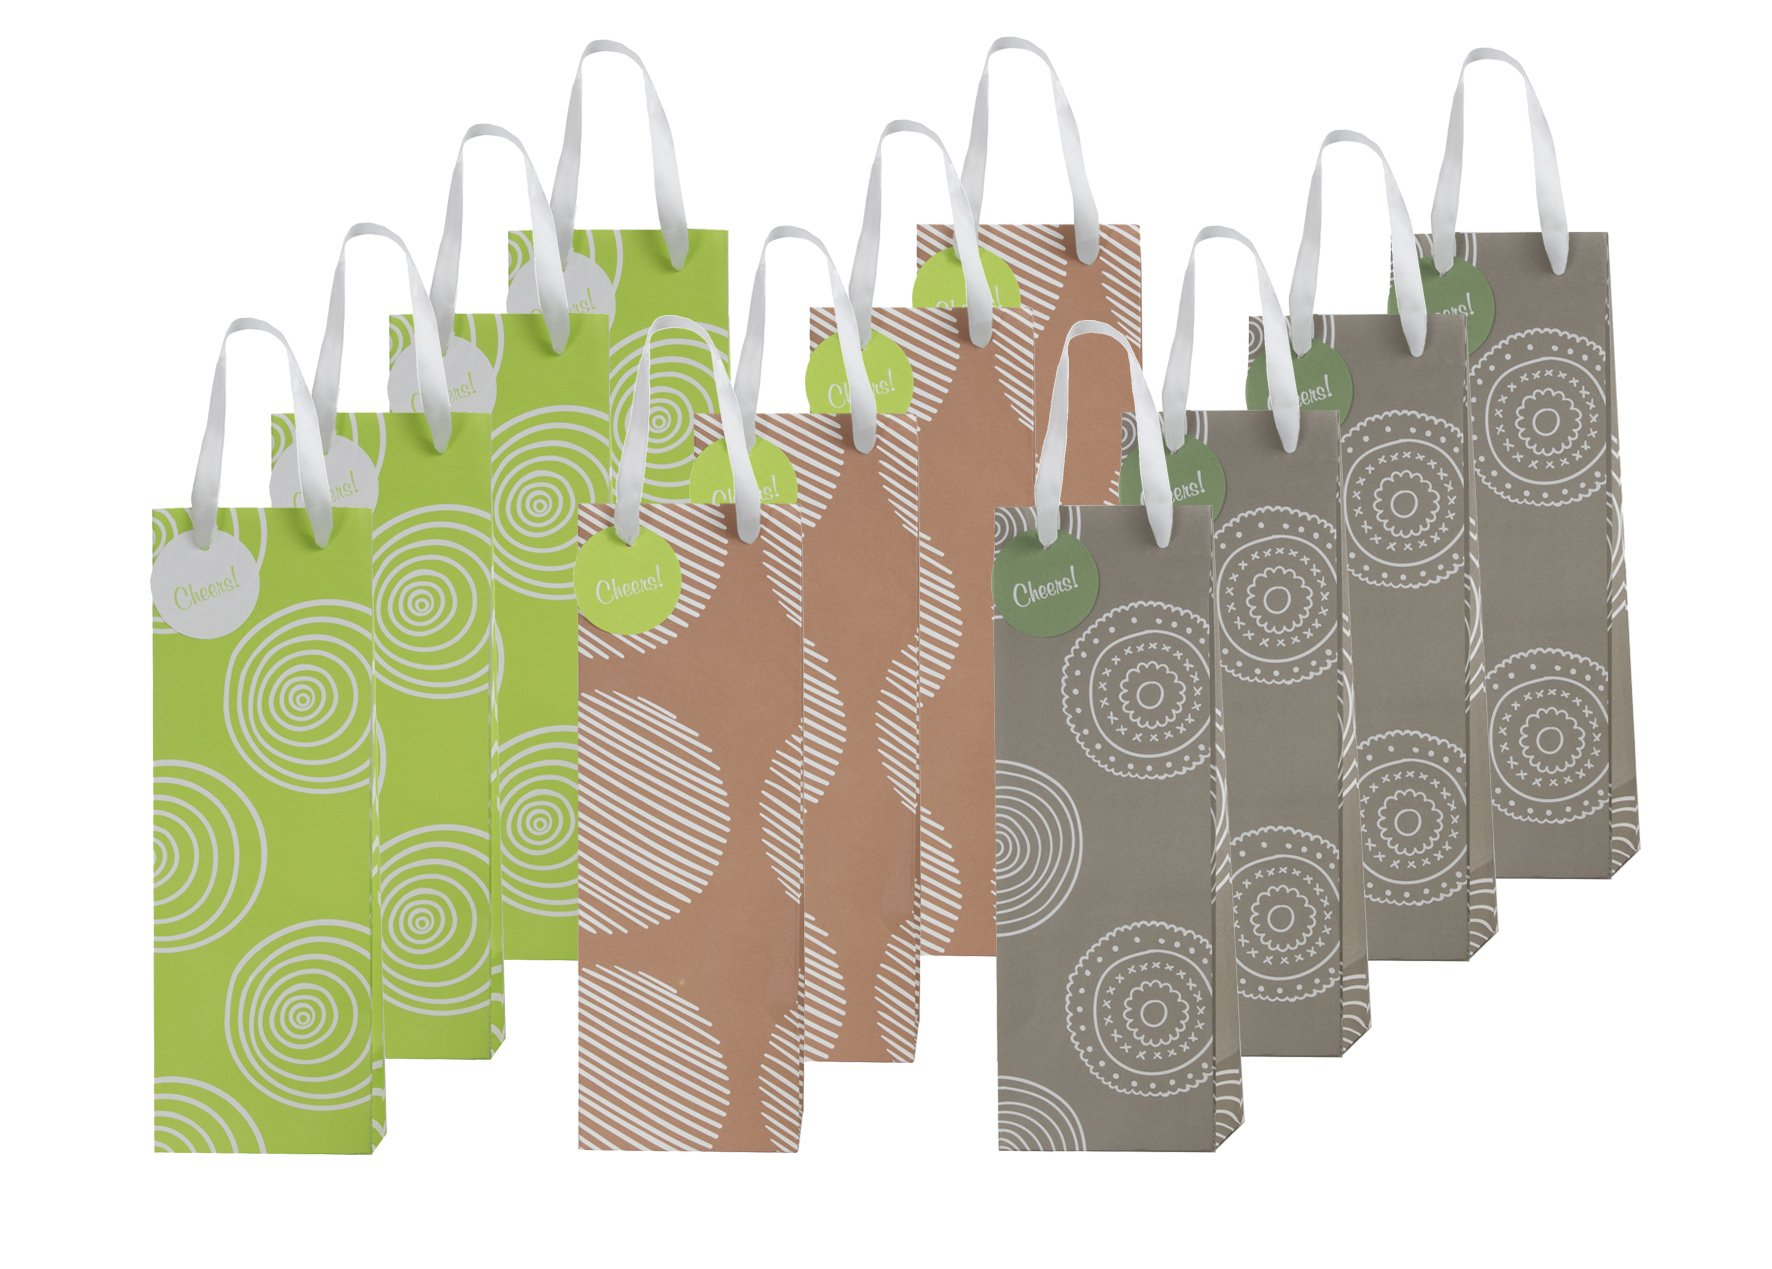 12 Piece Exclusive Wine Bags, 3 Organic Designs